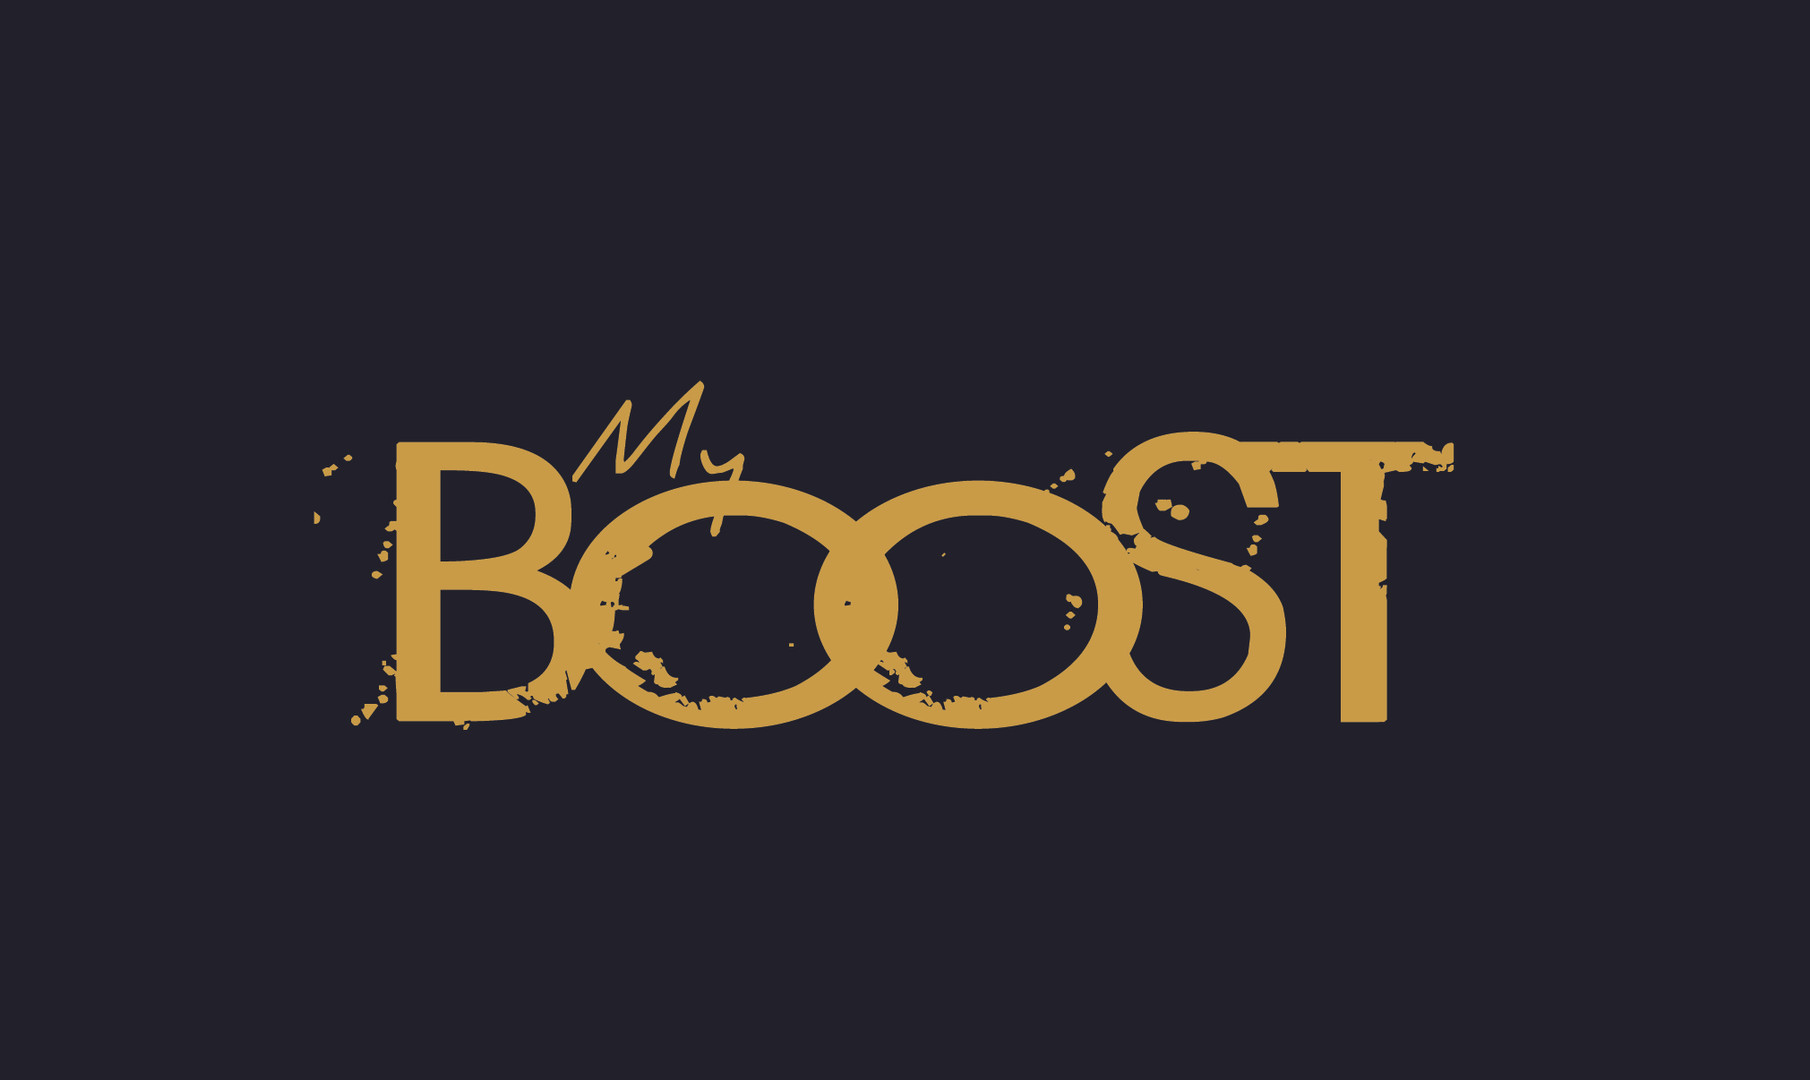 My Boost logo